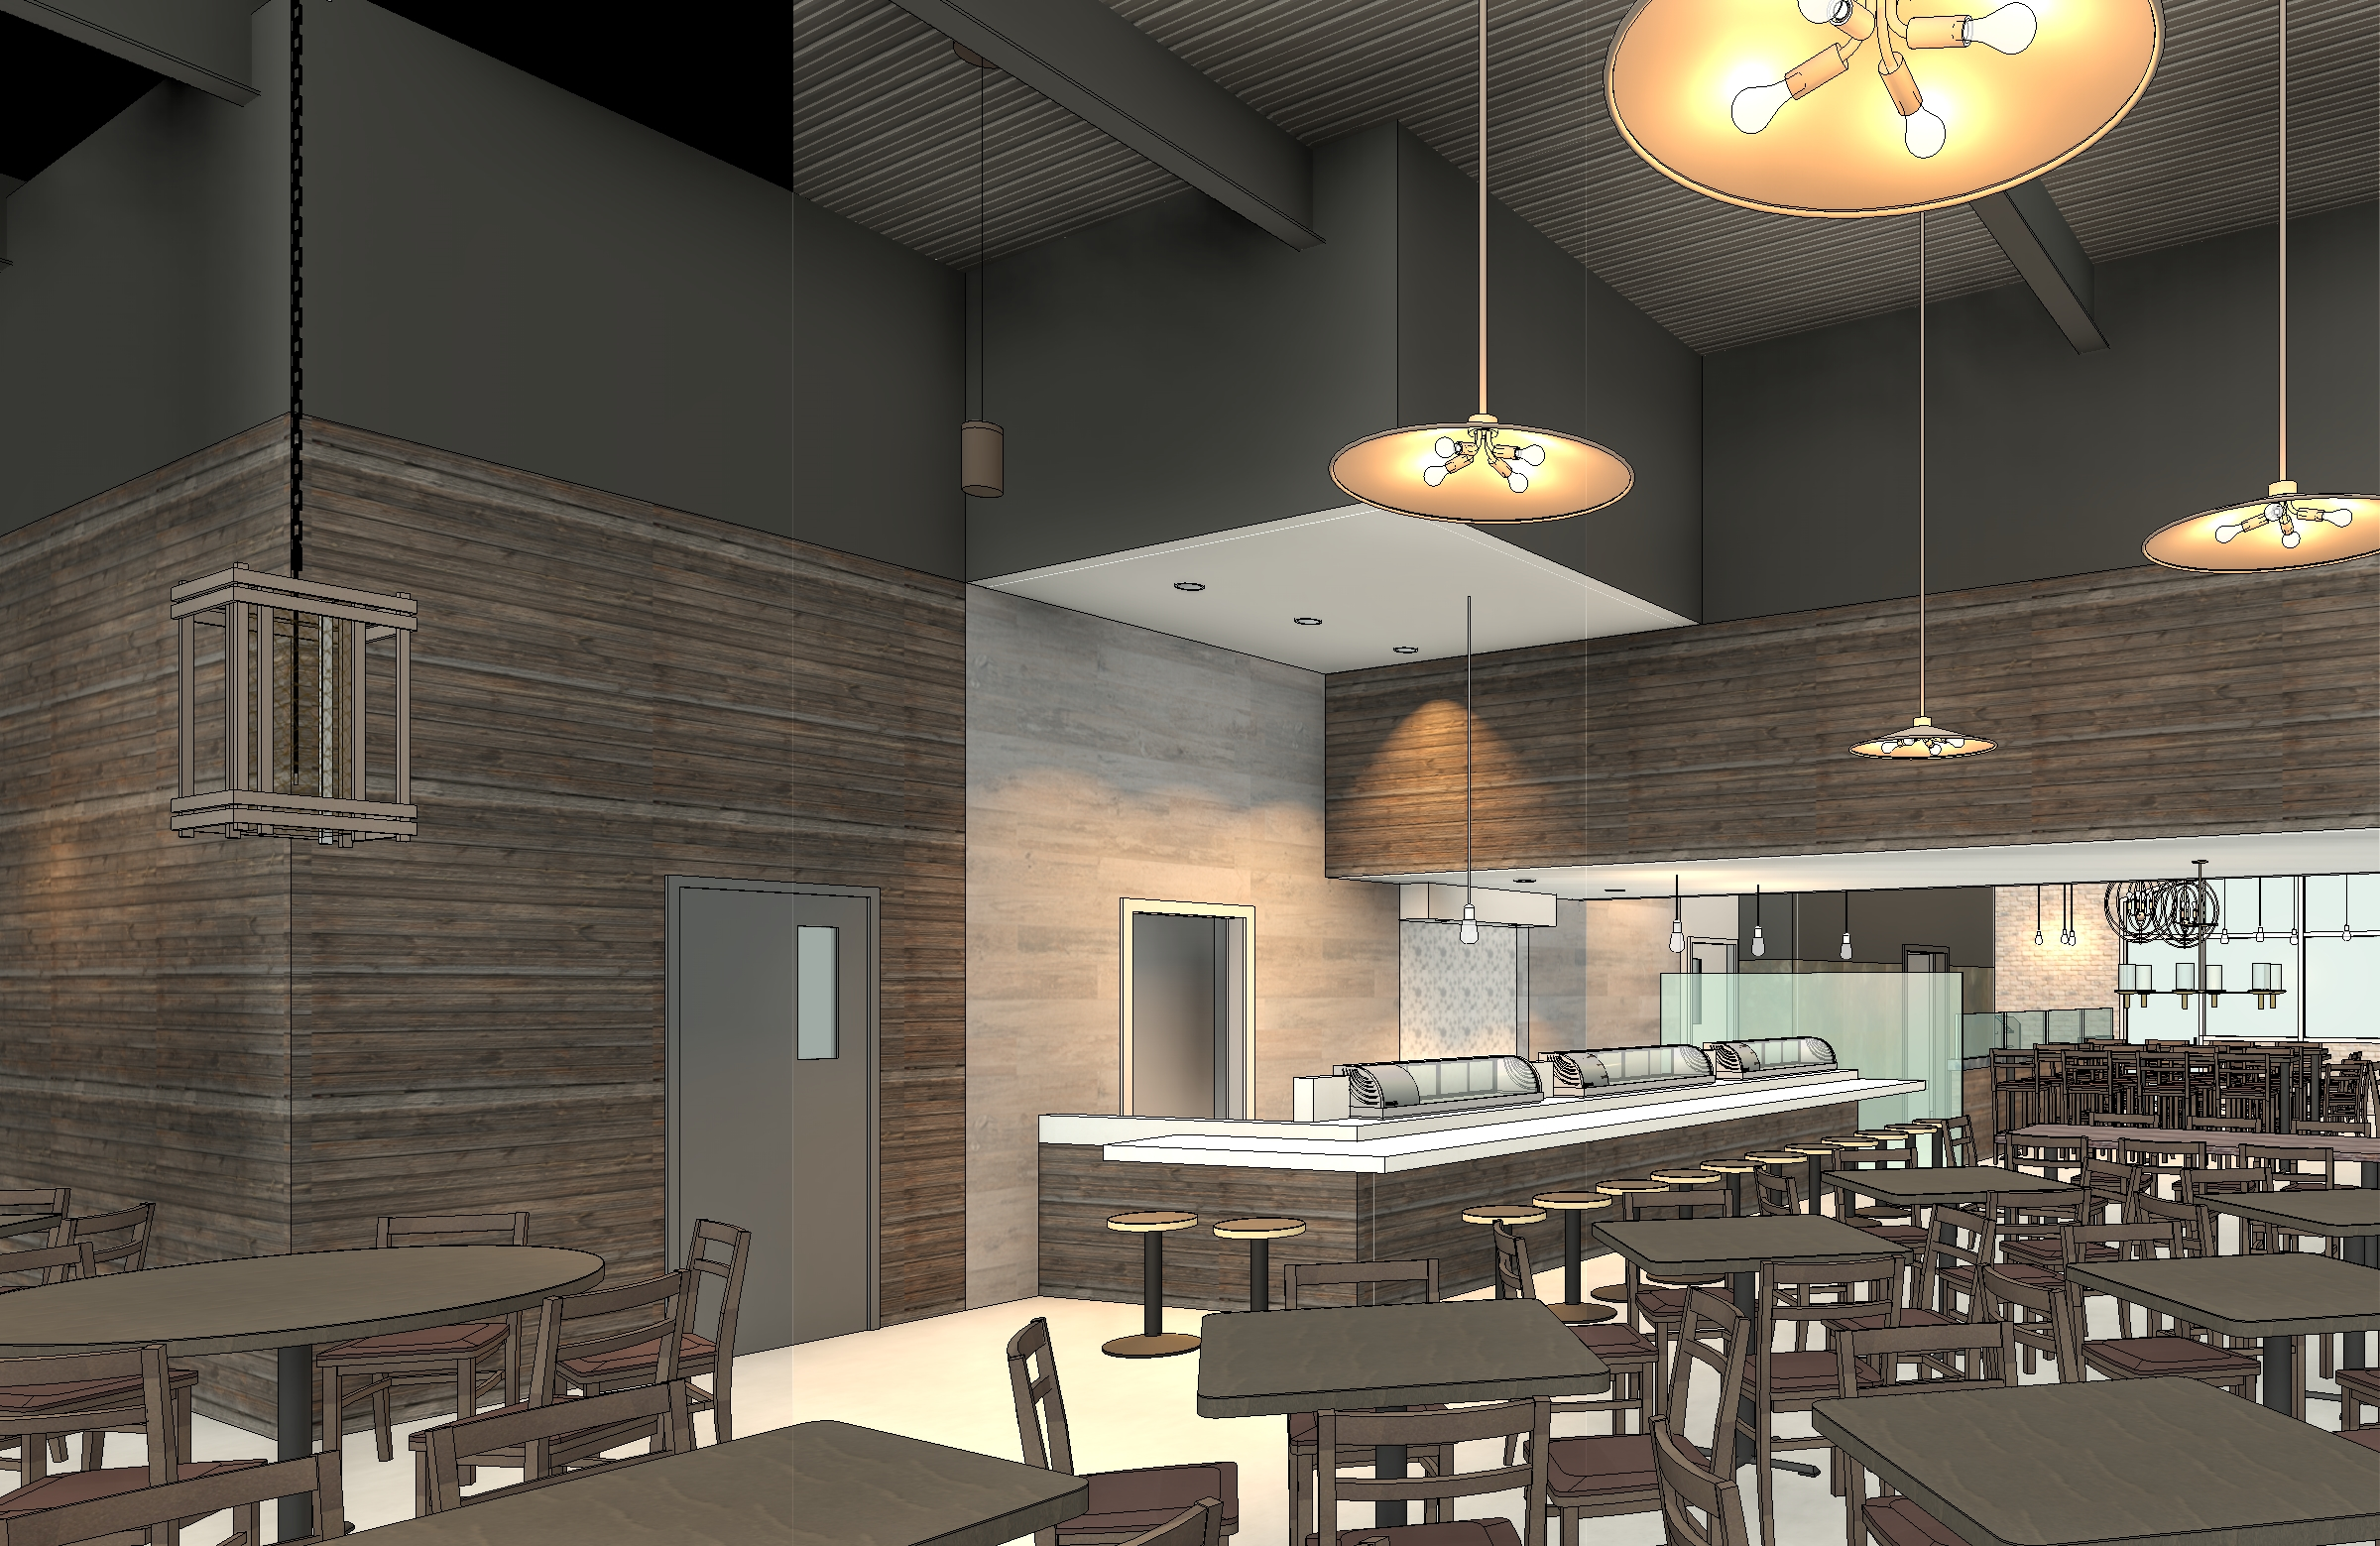 Restaurant interior revit model with custom lighting materials dining and sushi bar area with custom lighting fixtures arubaitofo Image collections